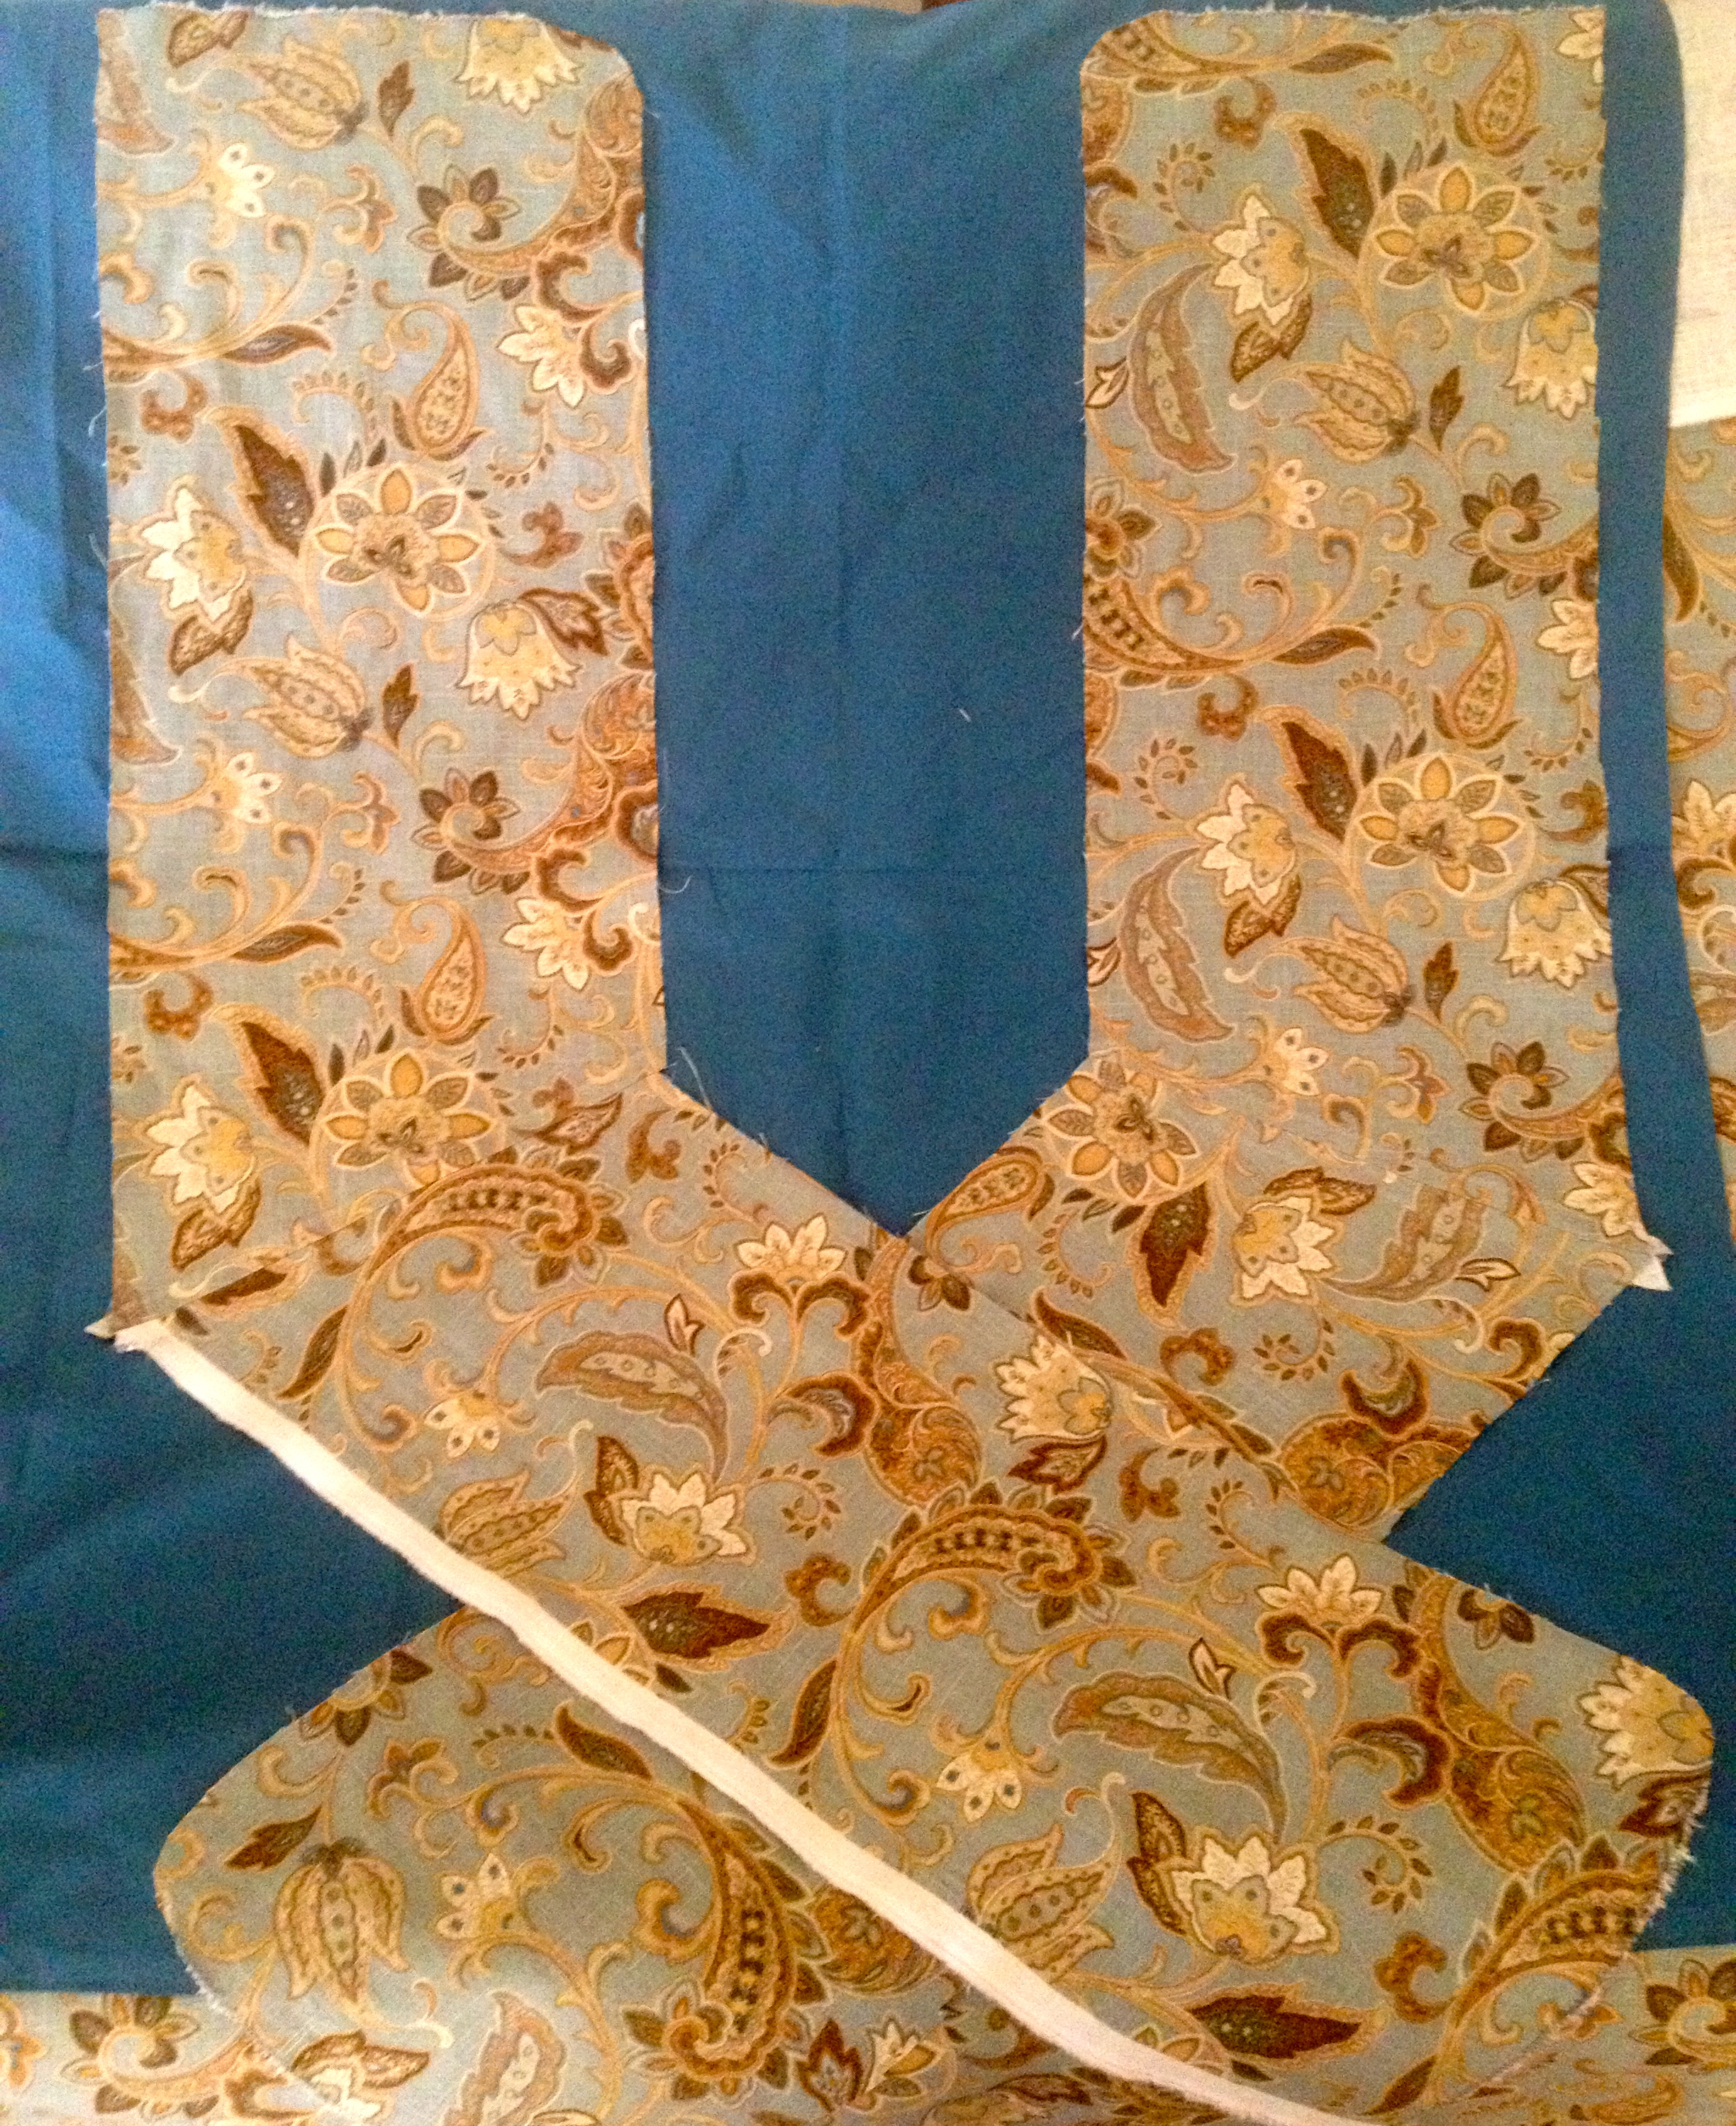 Picture of Sew the Side Pieces